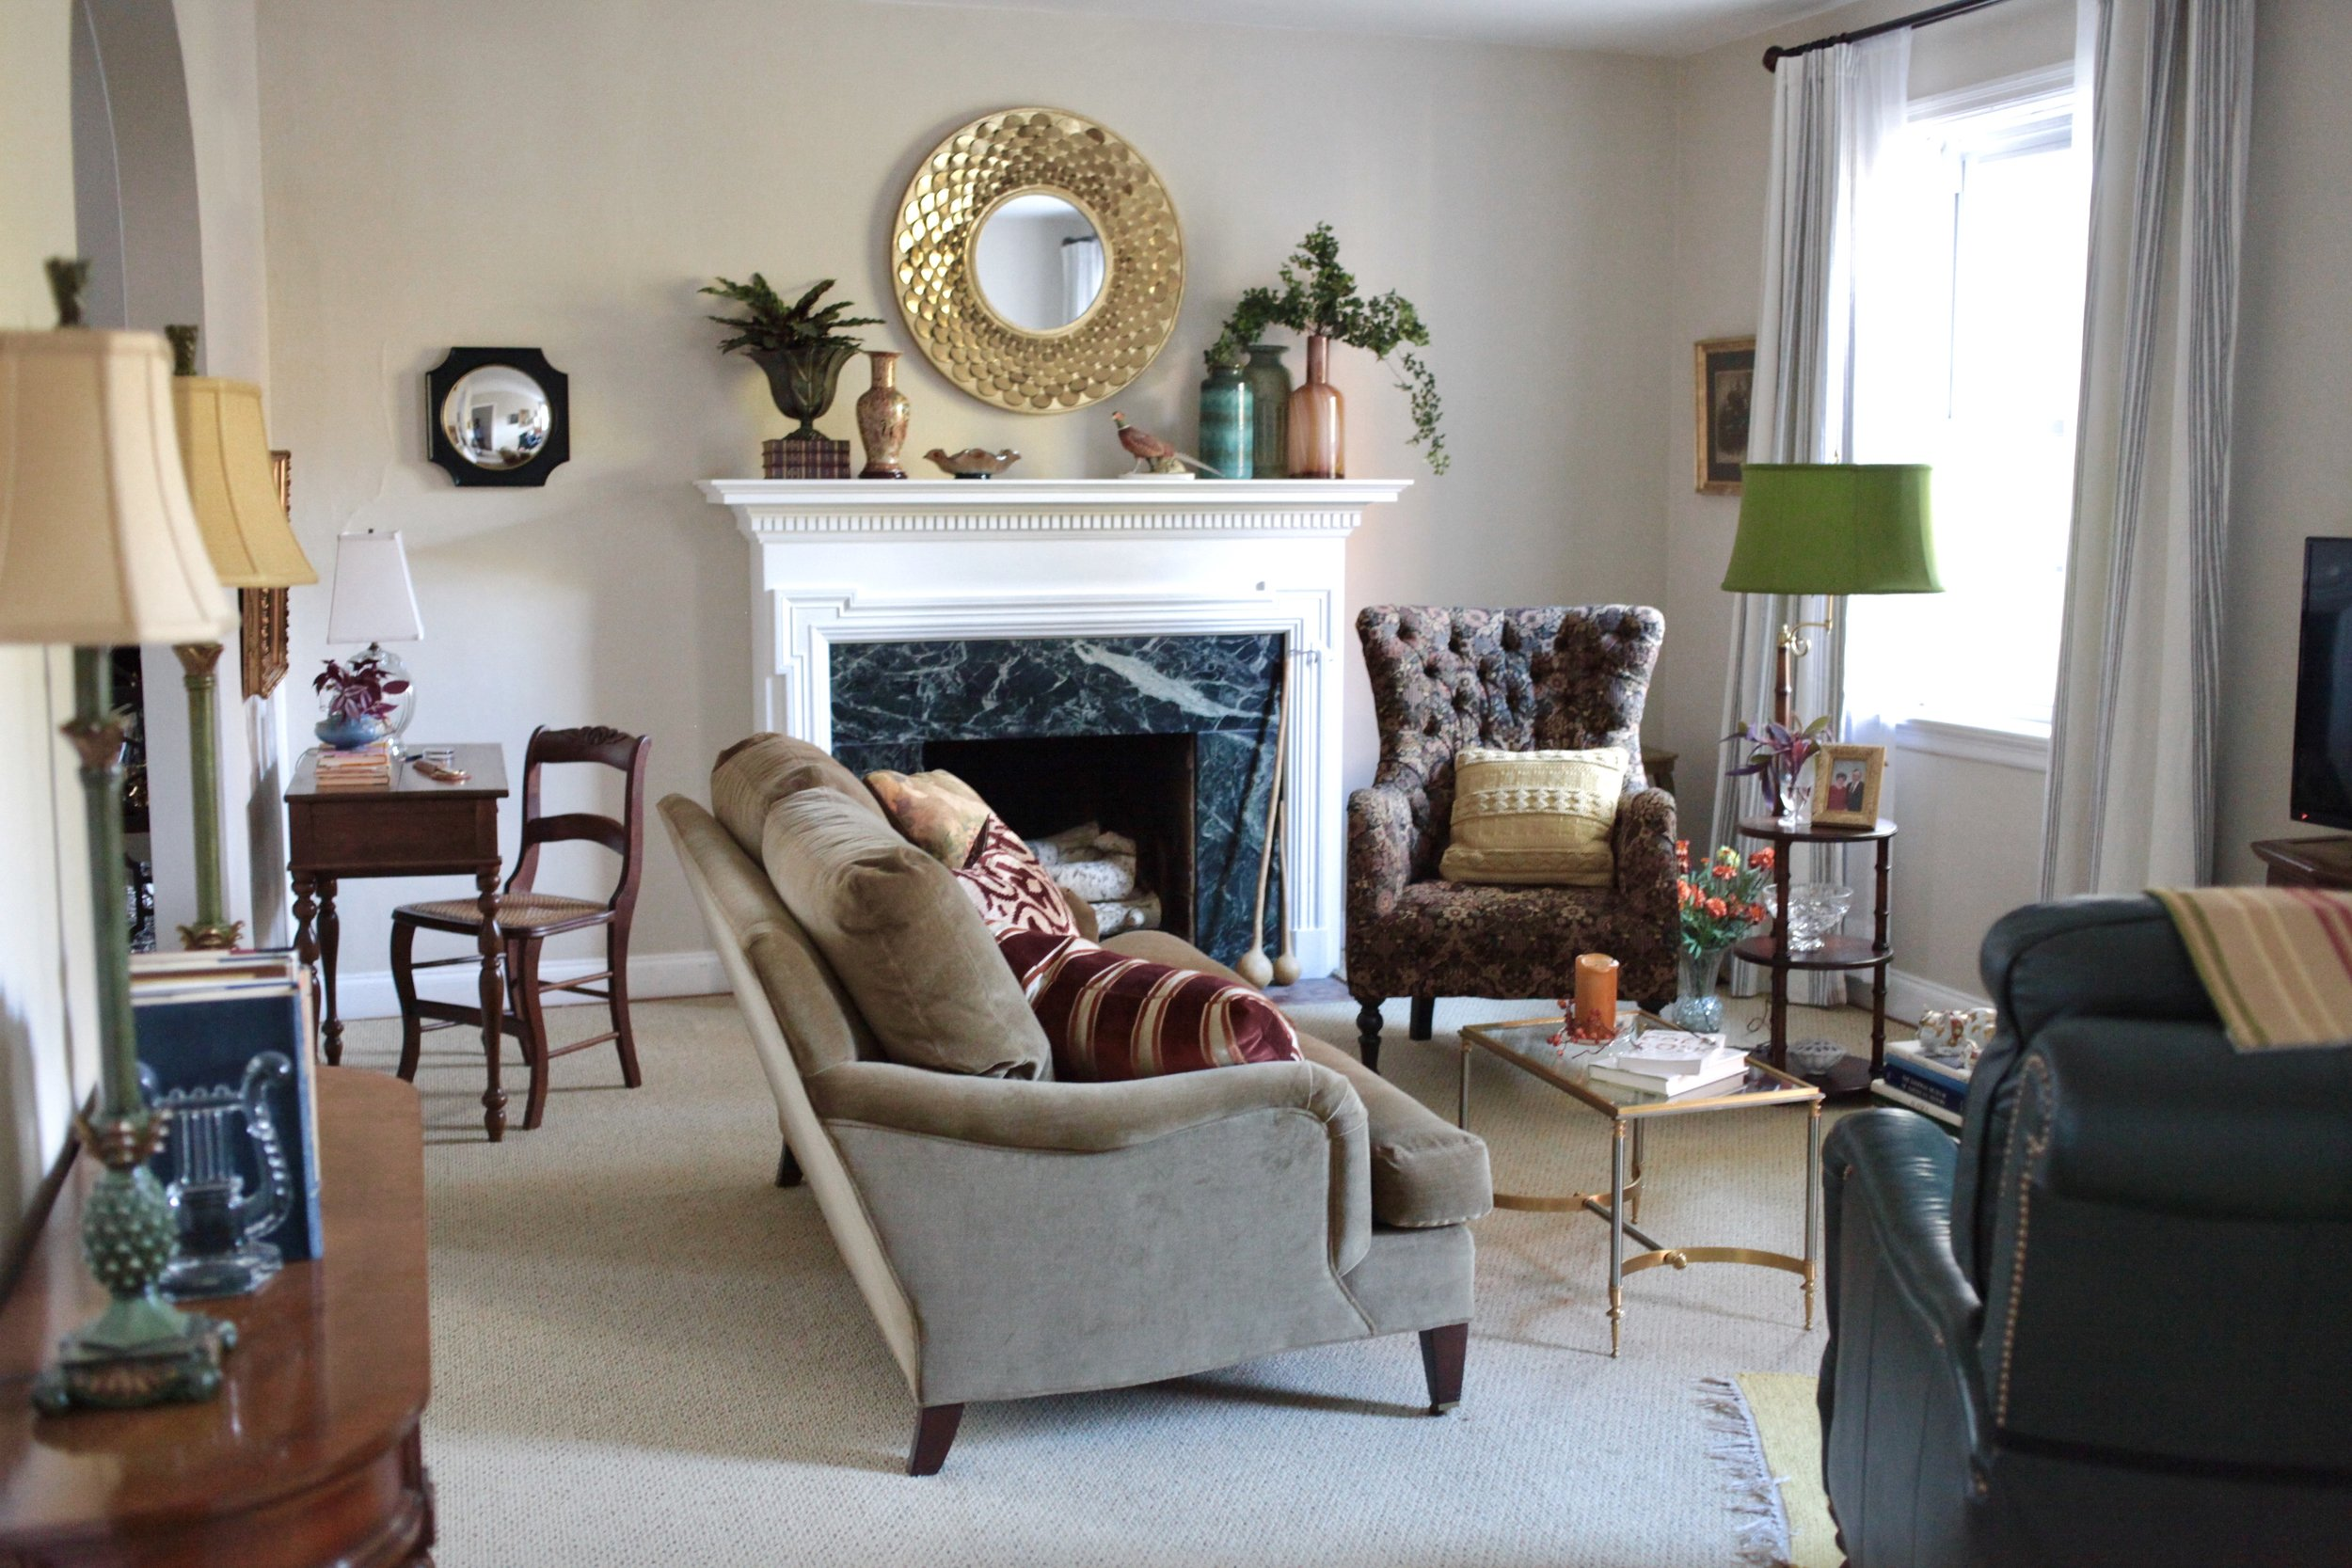 Traditional Living room with floating velvet sofa, white fireplace, green lamp shade, circle mirror, concave mirror, and tufted chair